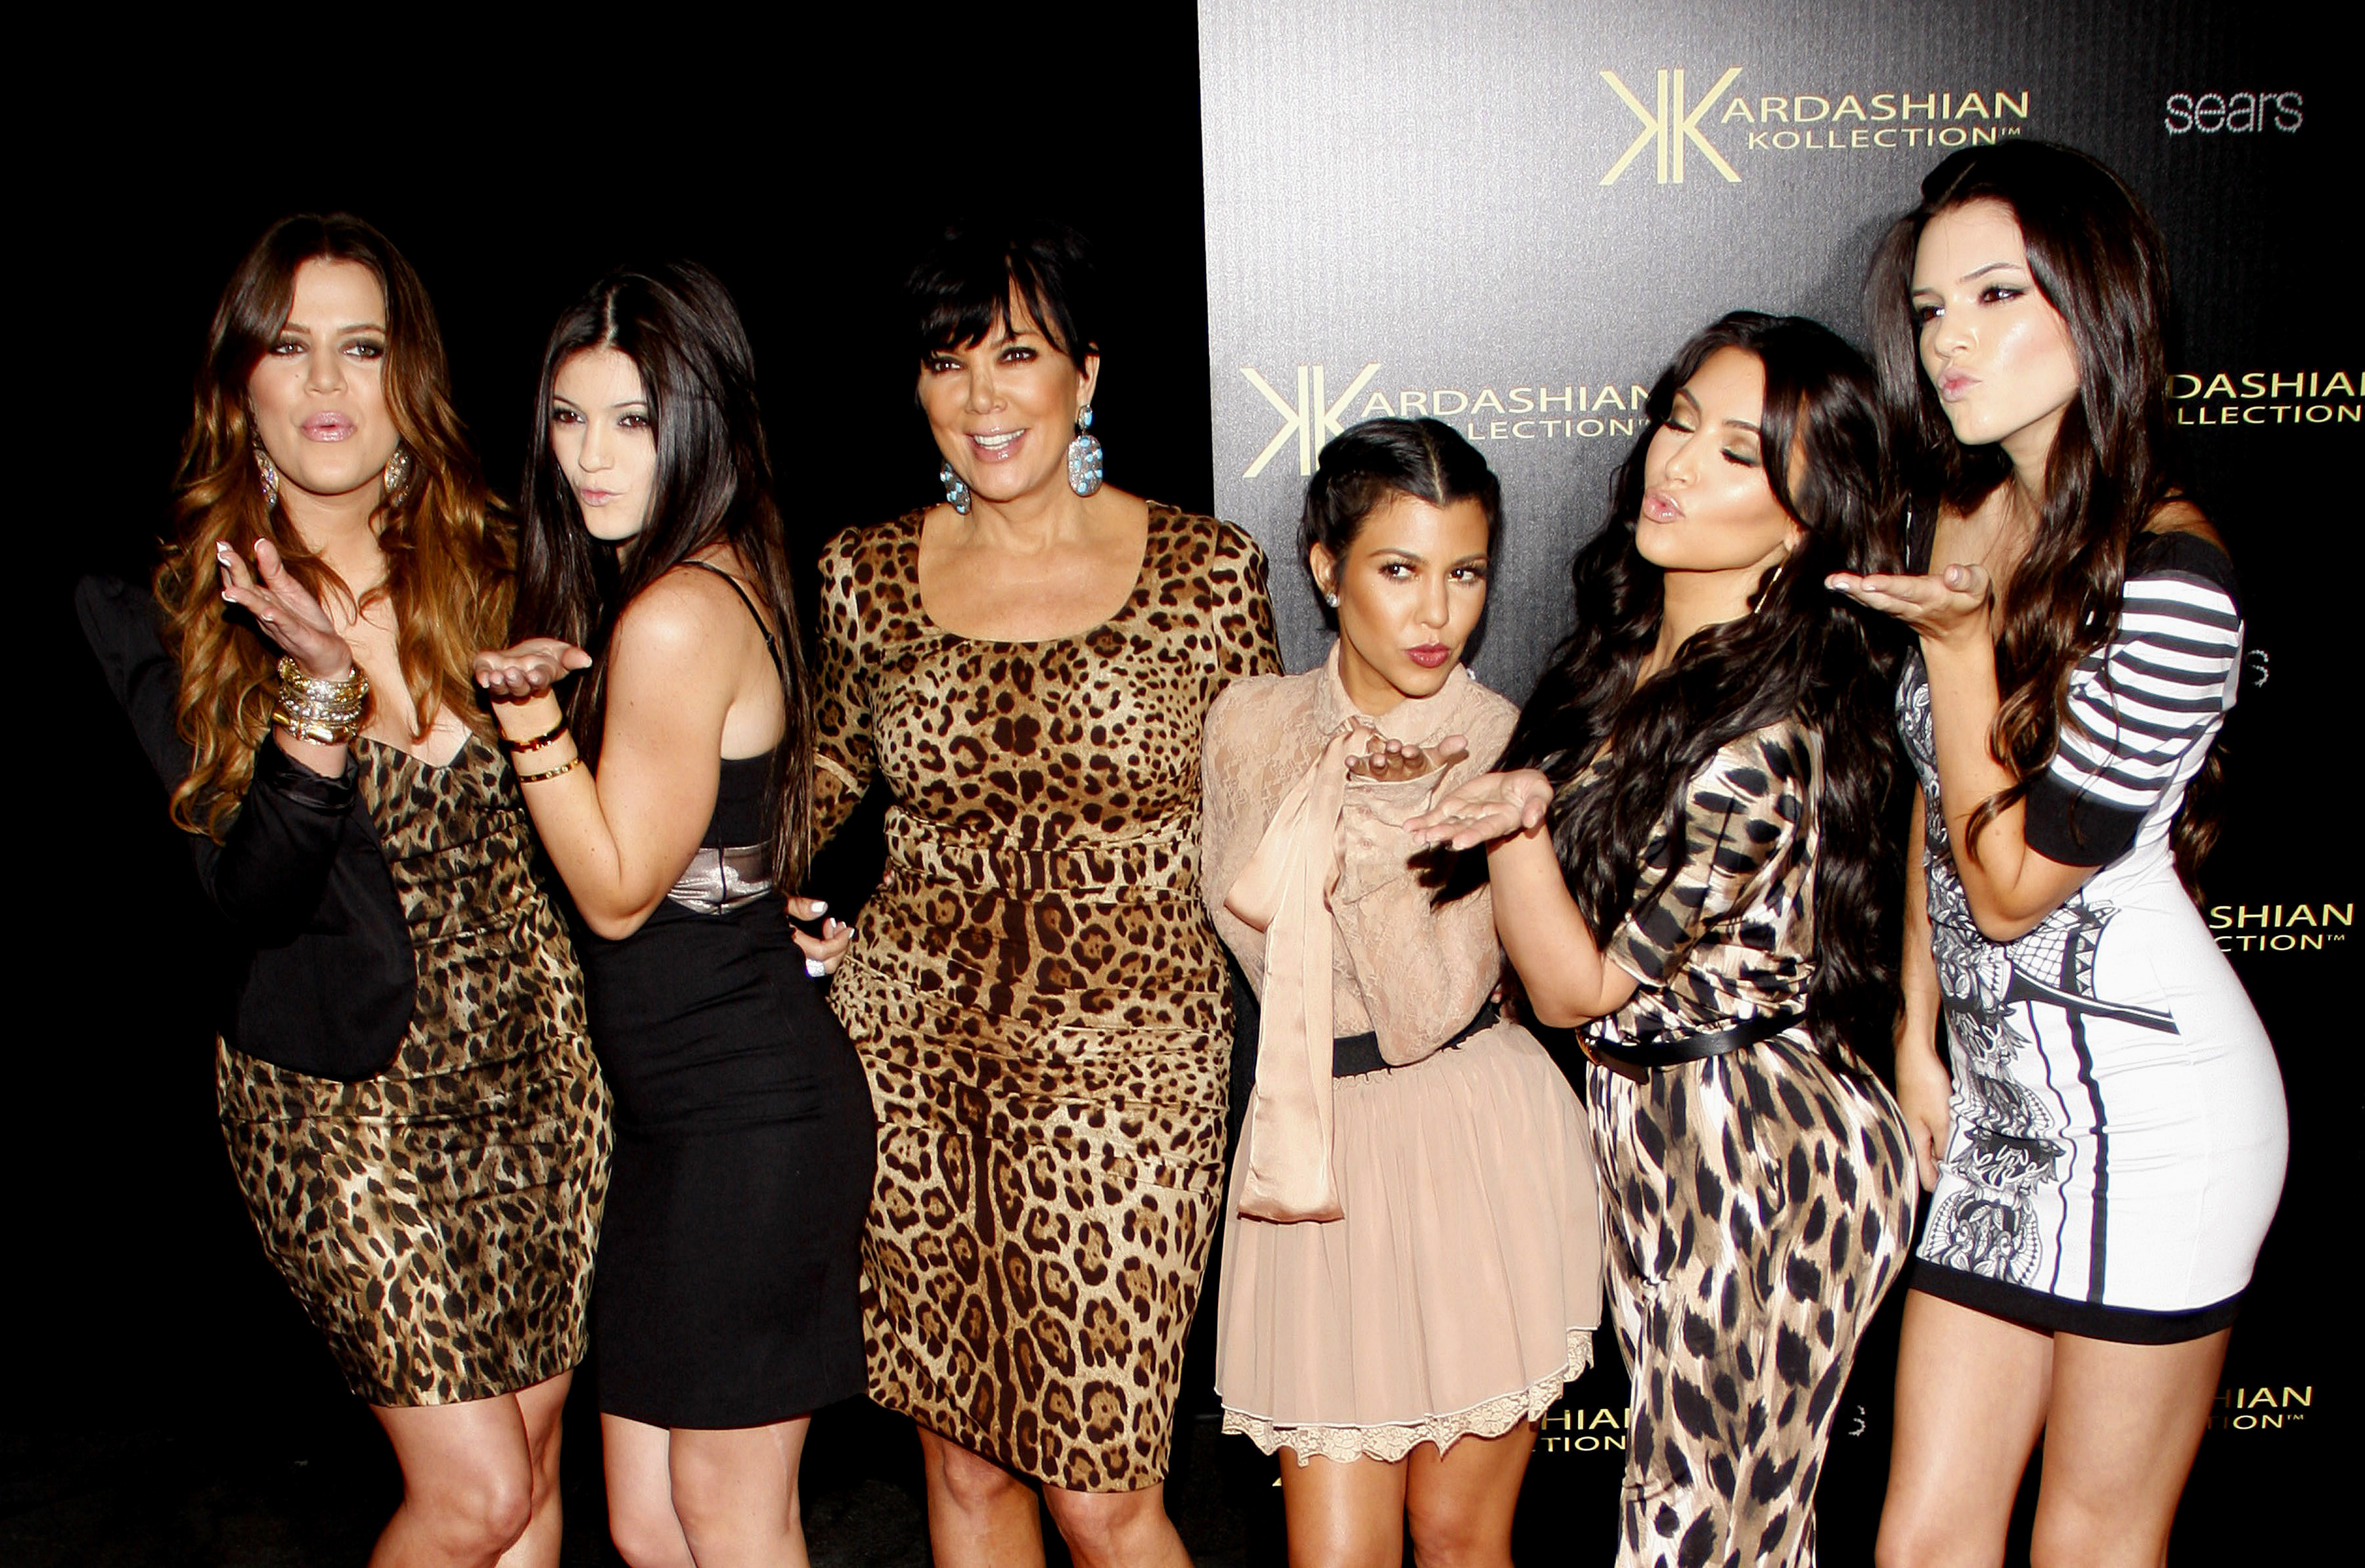 4 Marketing Lessons We Can Learn from the Kardashians